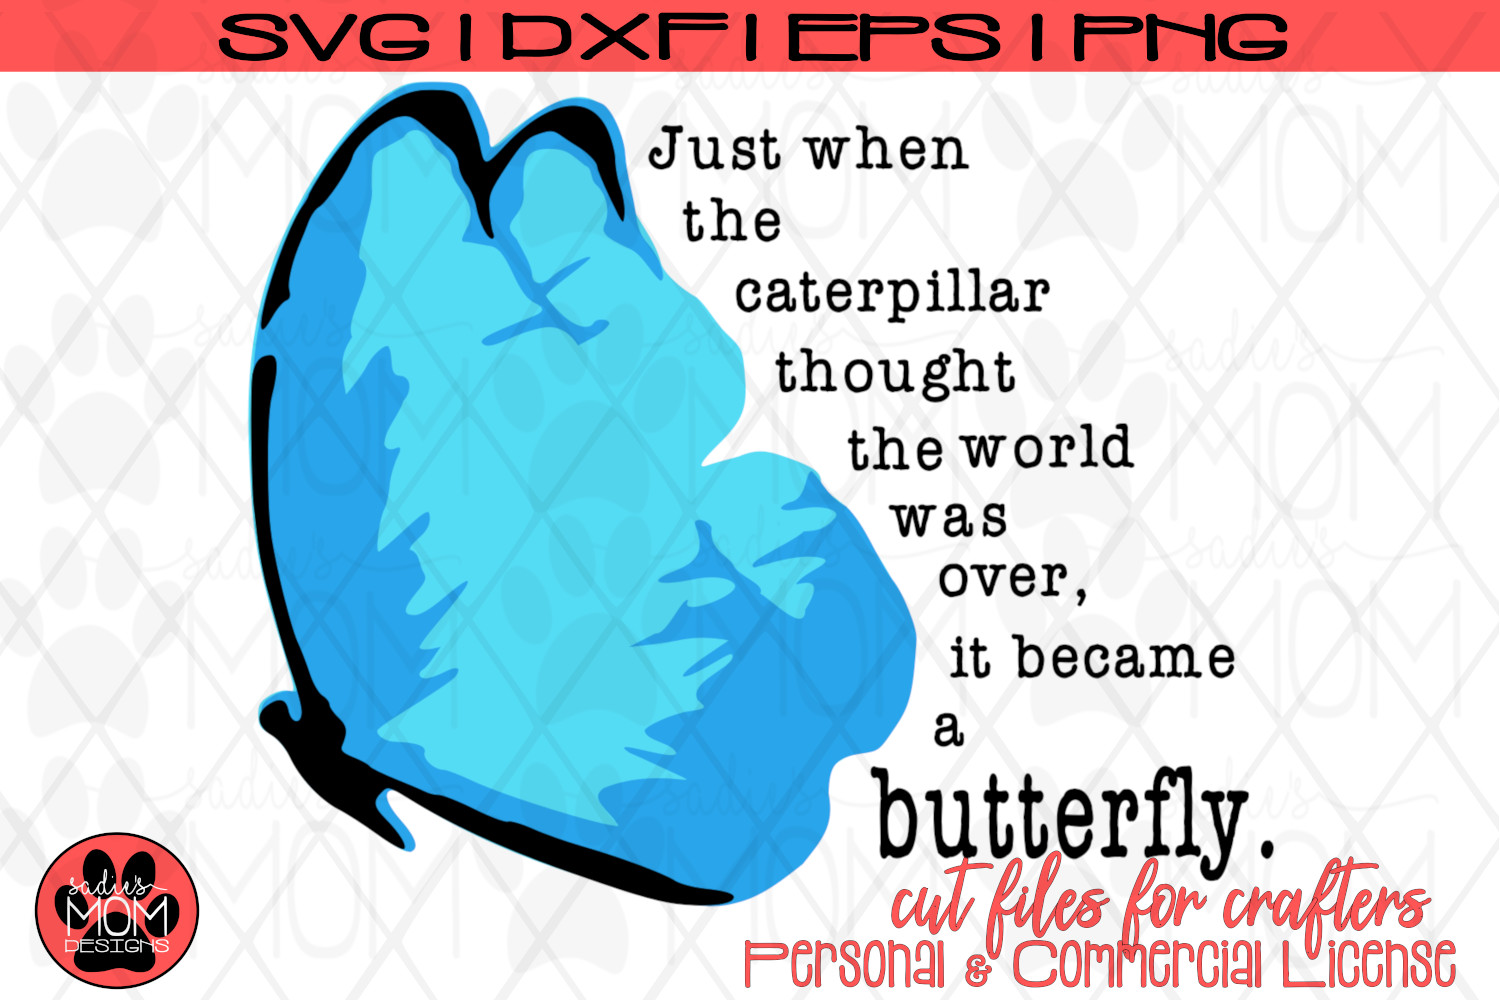 Butterfly Saying - Just When the Caterpillar | SVG Cut File example image 5